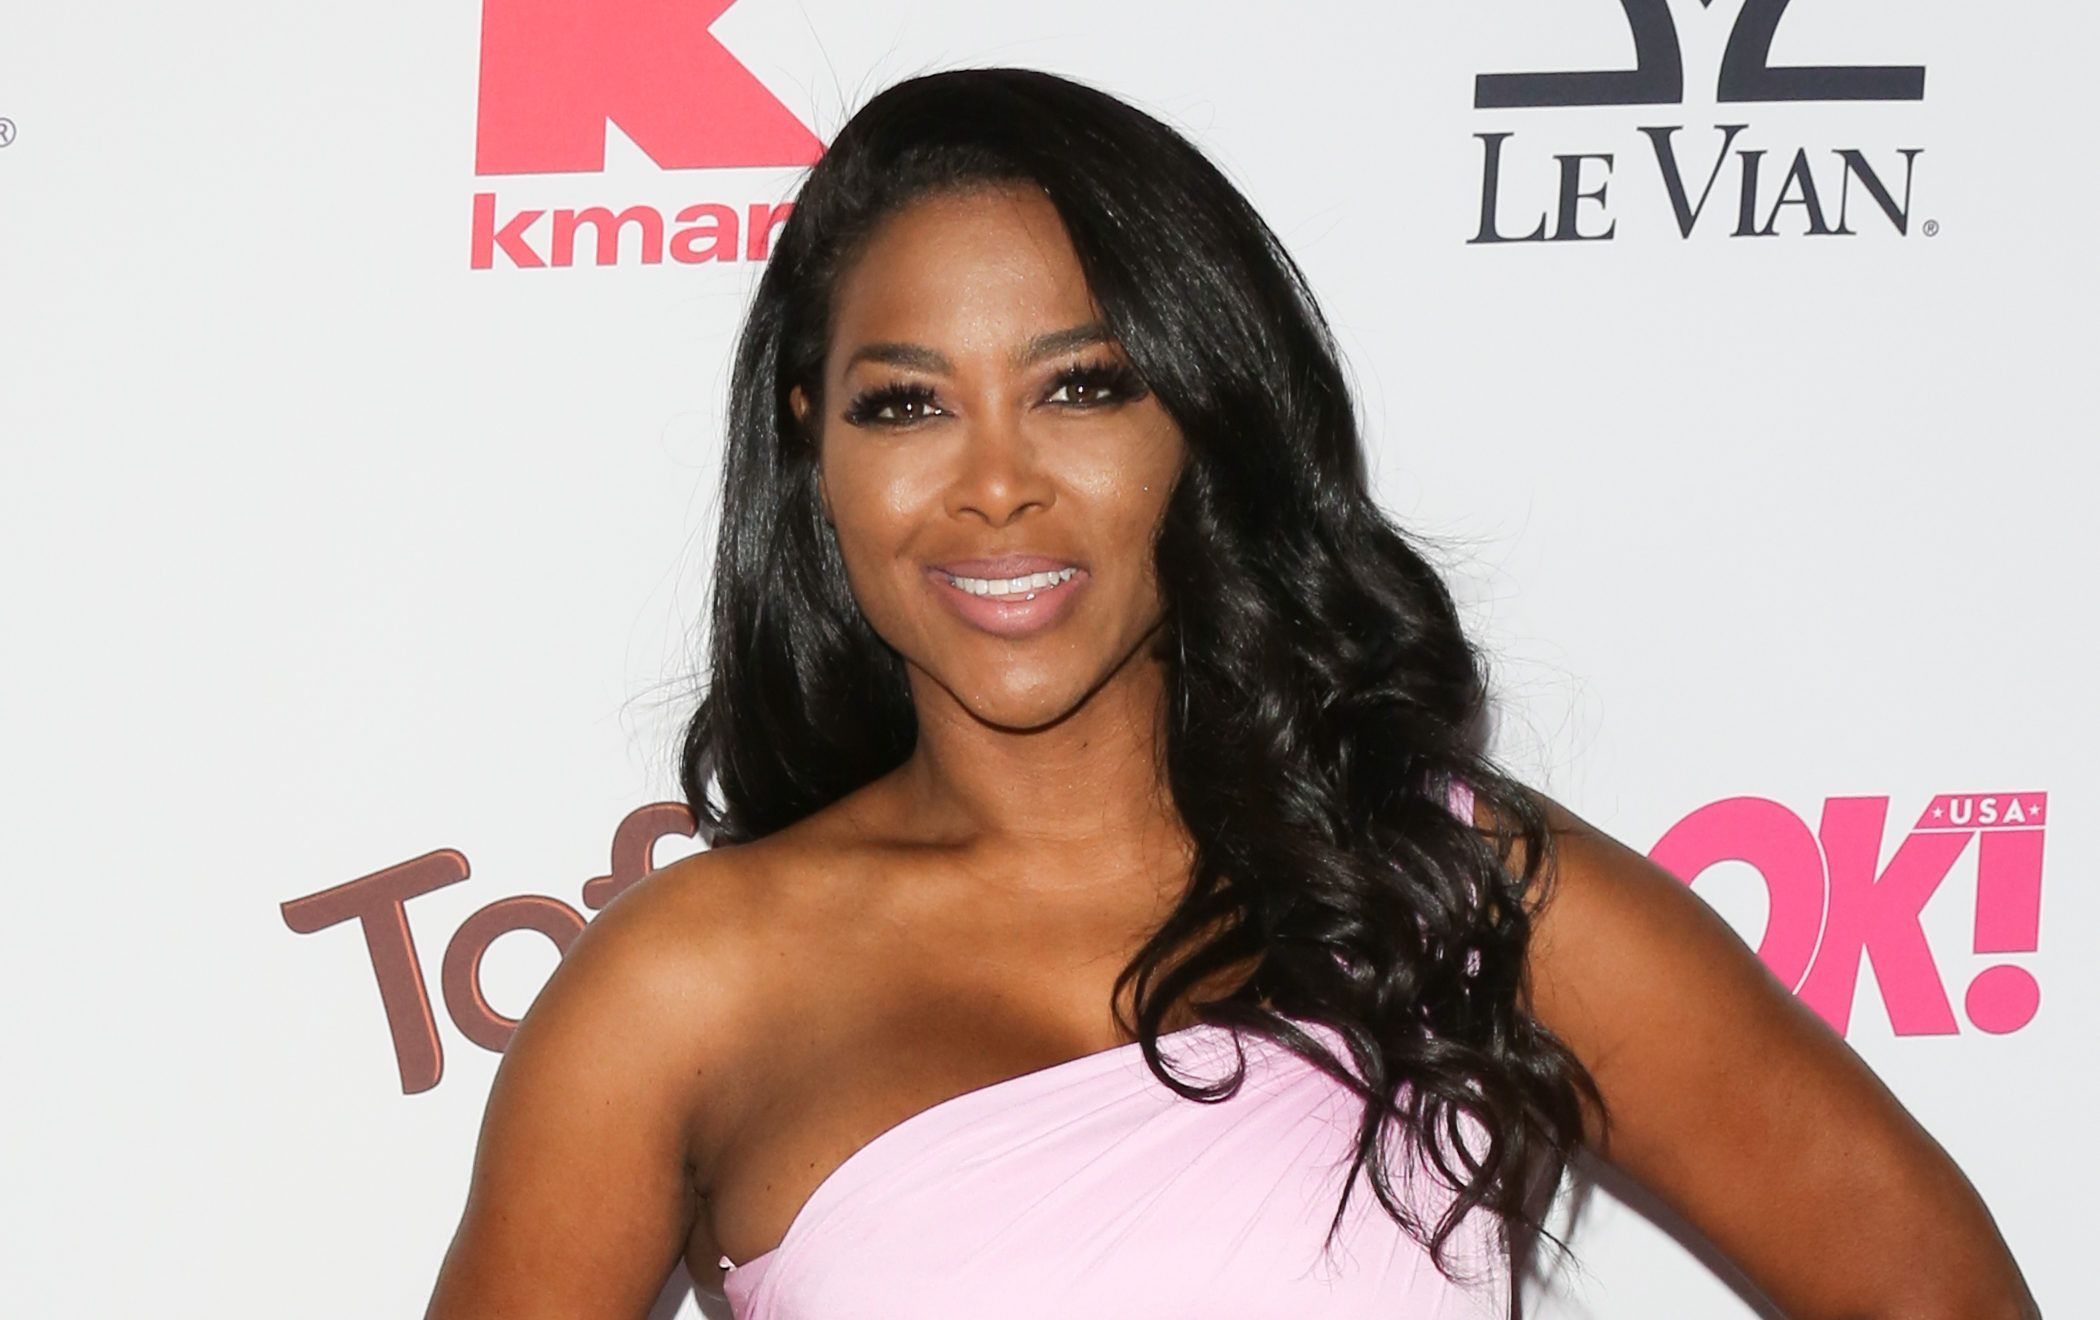 Oh Baby! Kenya Moore Gives Fans a Glimpse at Baby Shower